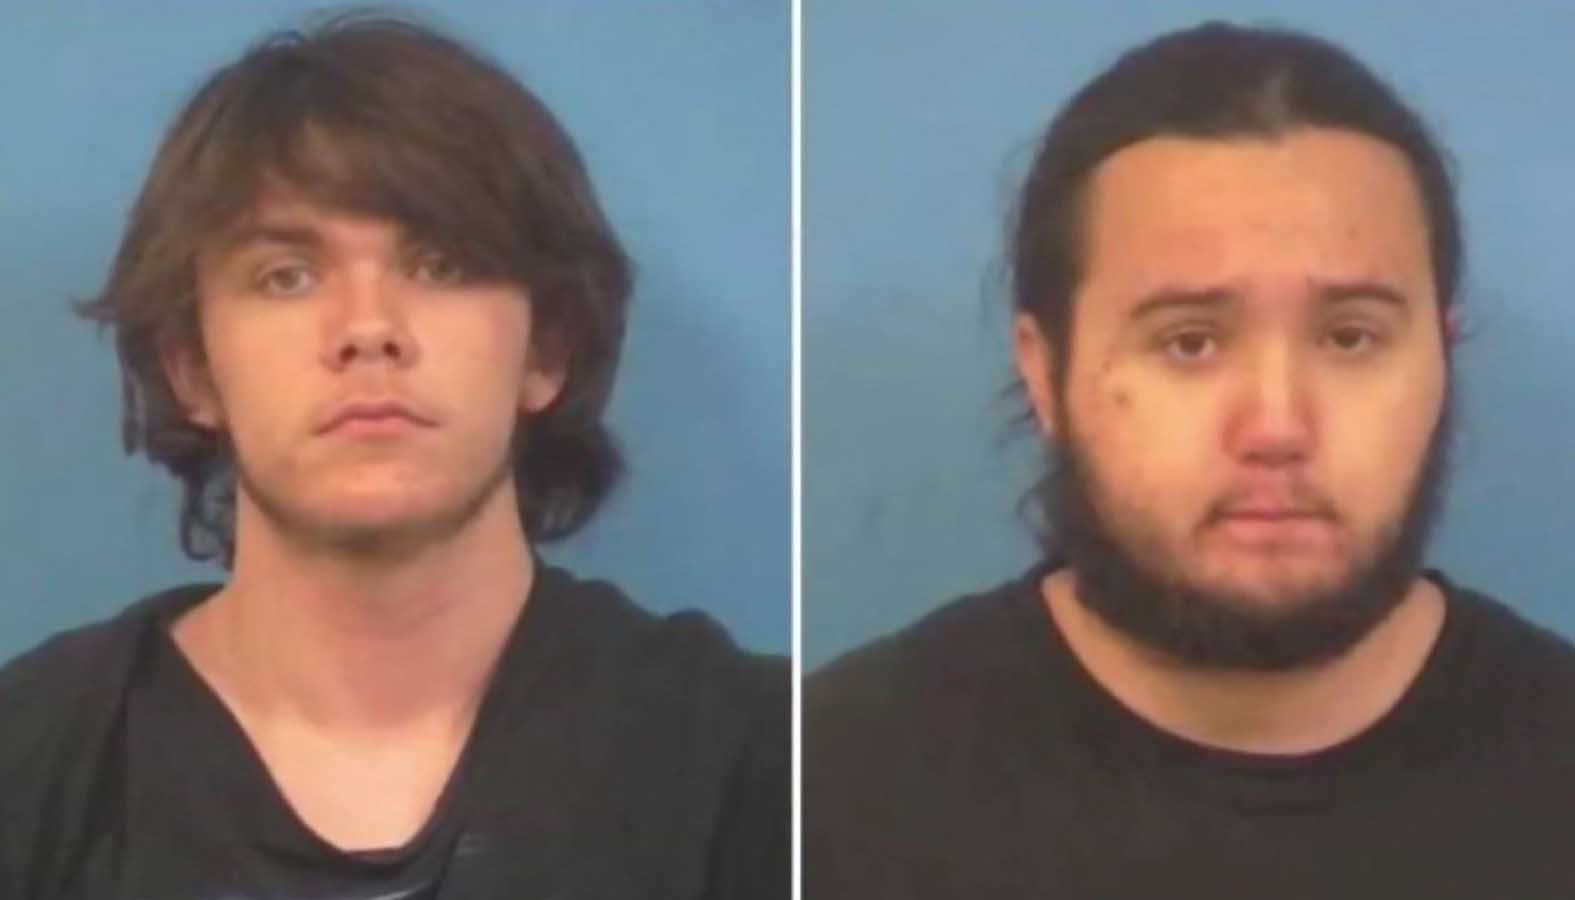 Police said the two 17-year-olds told them that they beat and stabbed their mother to death because they were sick of her parenting. (Source: KVVU/Nye County Sheriff's Office via CNN)